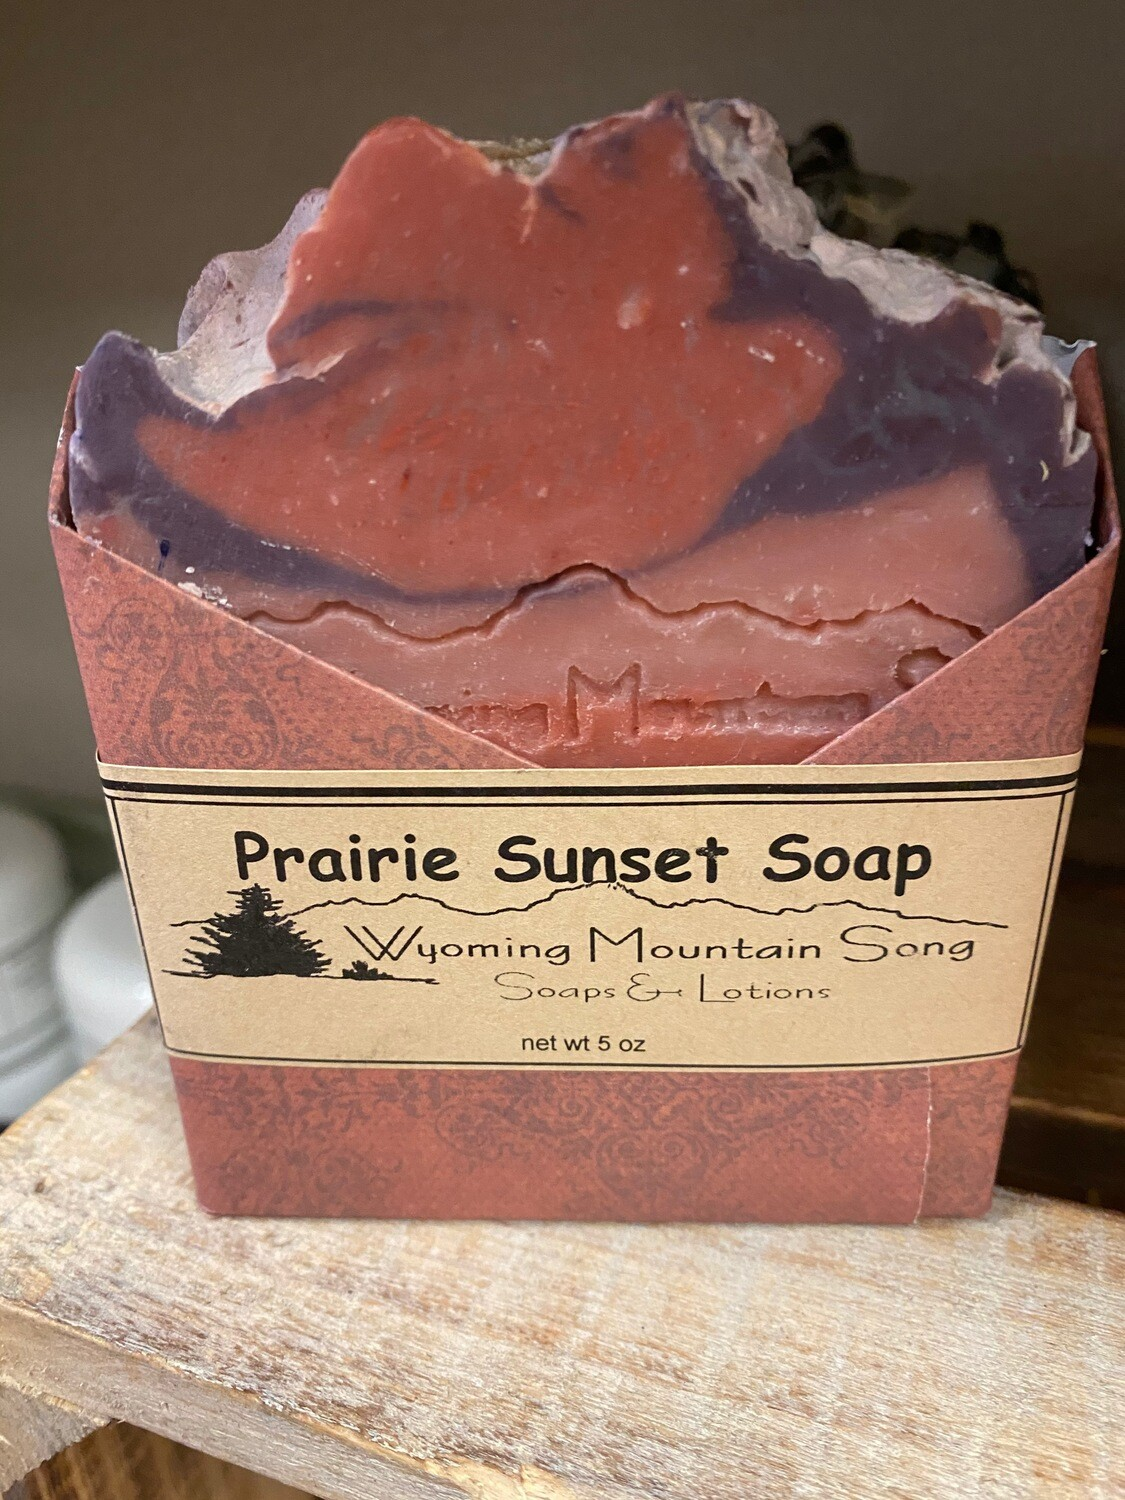 Wyoming Mountain Song soap